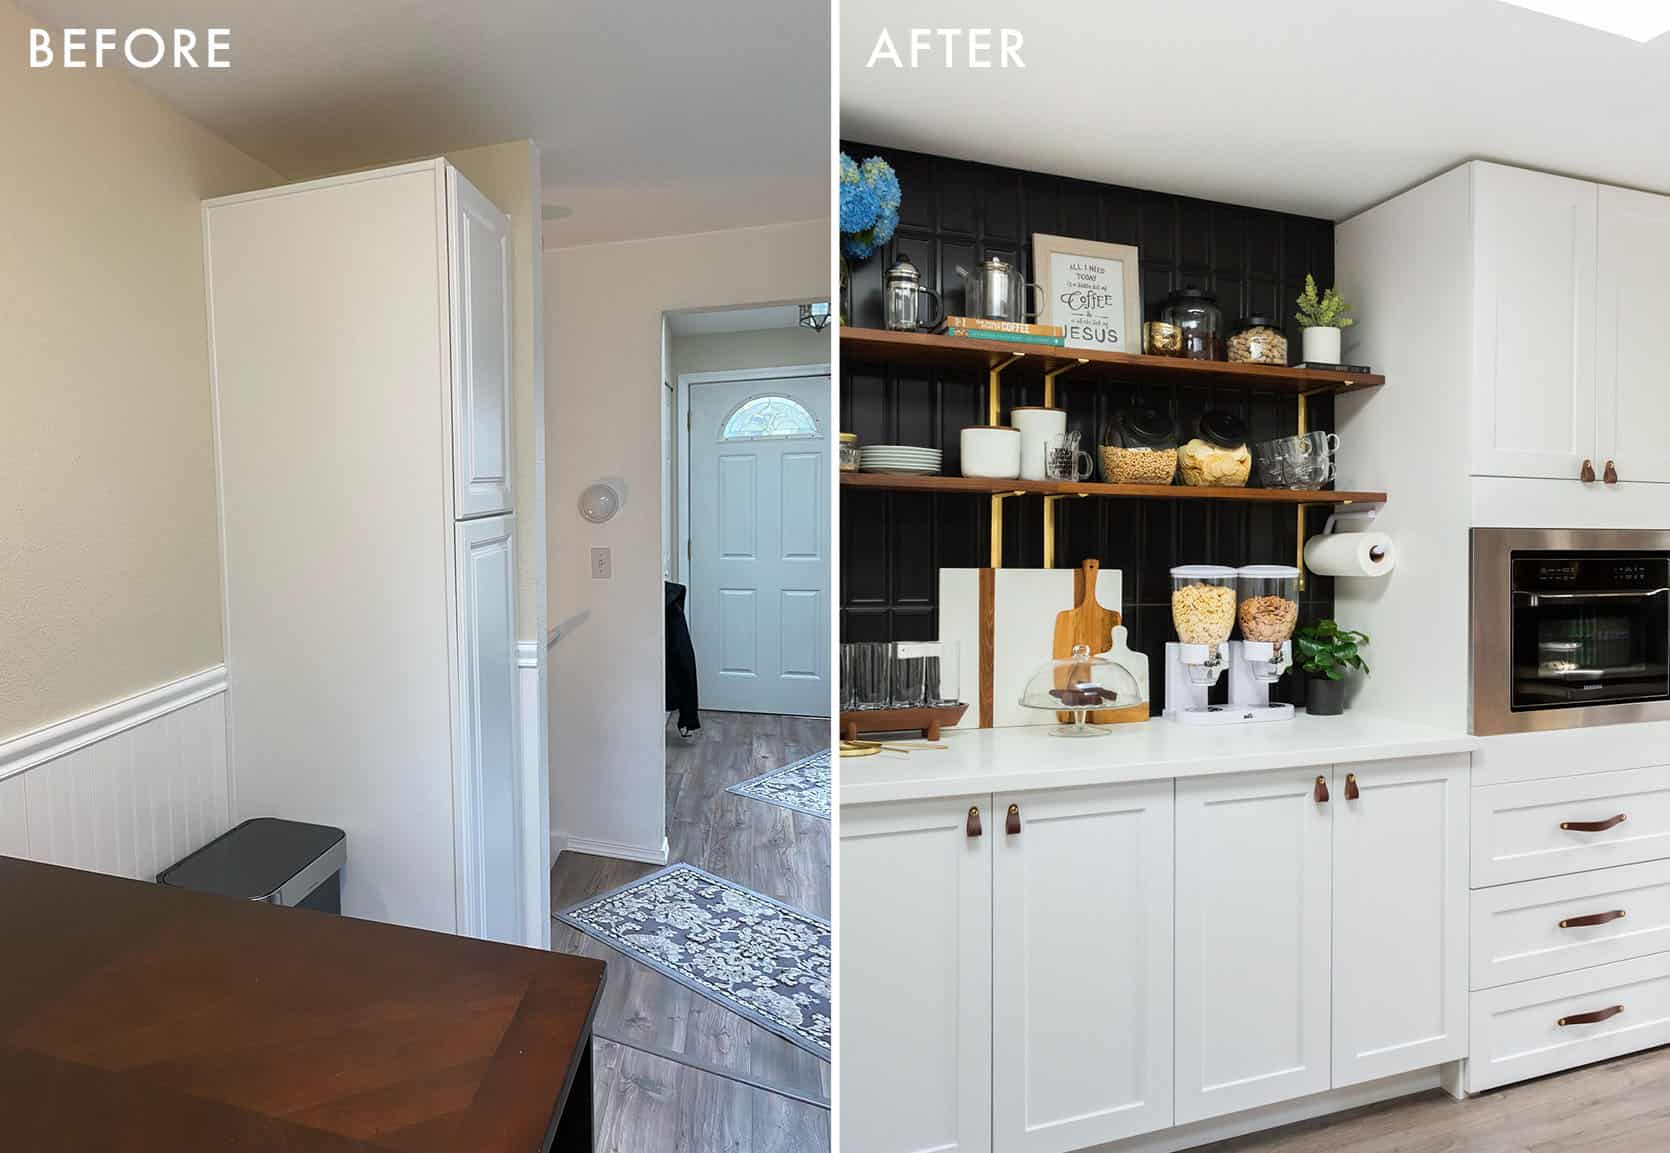 Albies Kitchen Before and After1